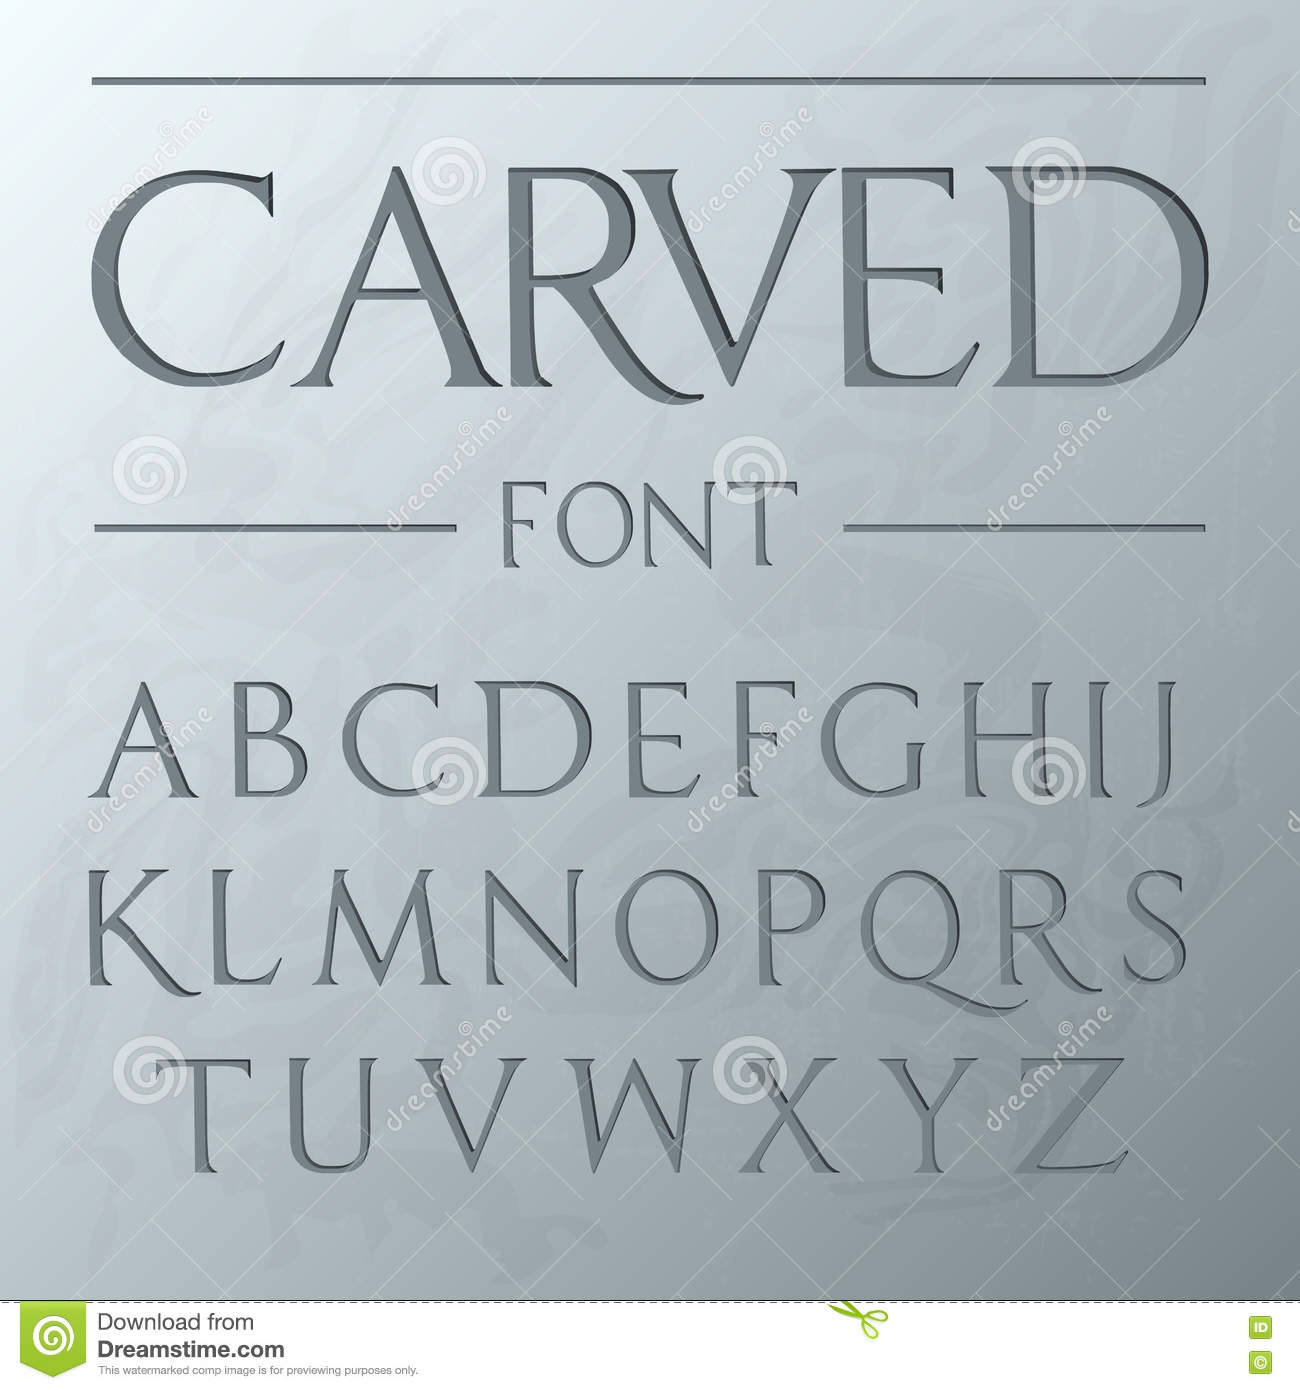 Engraving fonts items in culasers store on ebay! Clip art library.